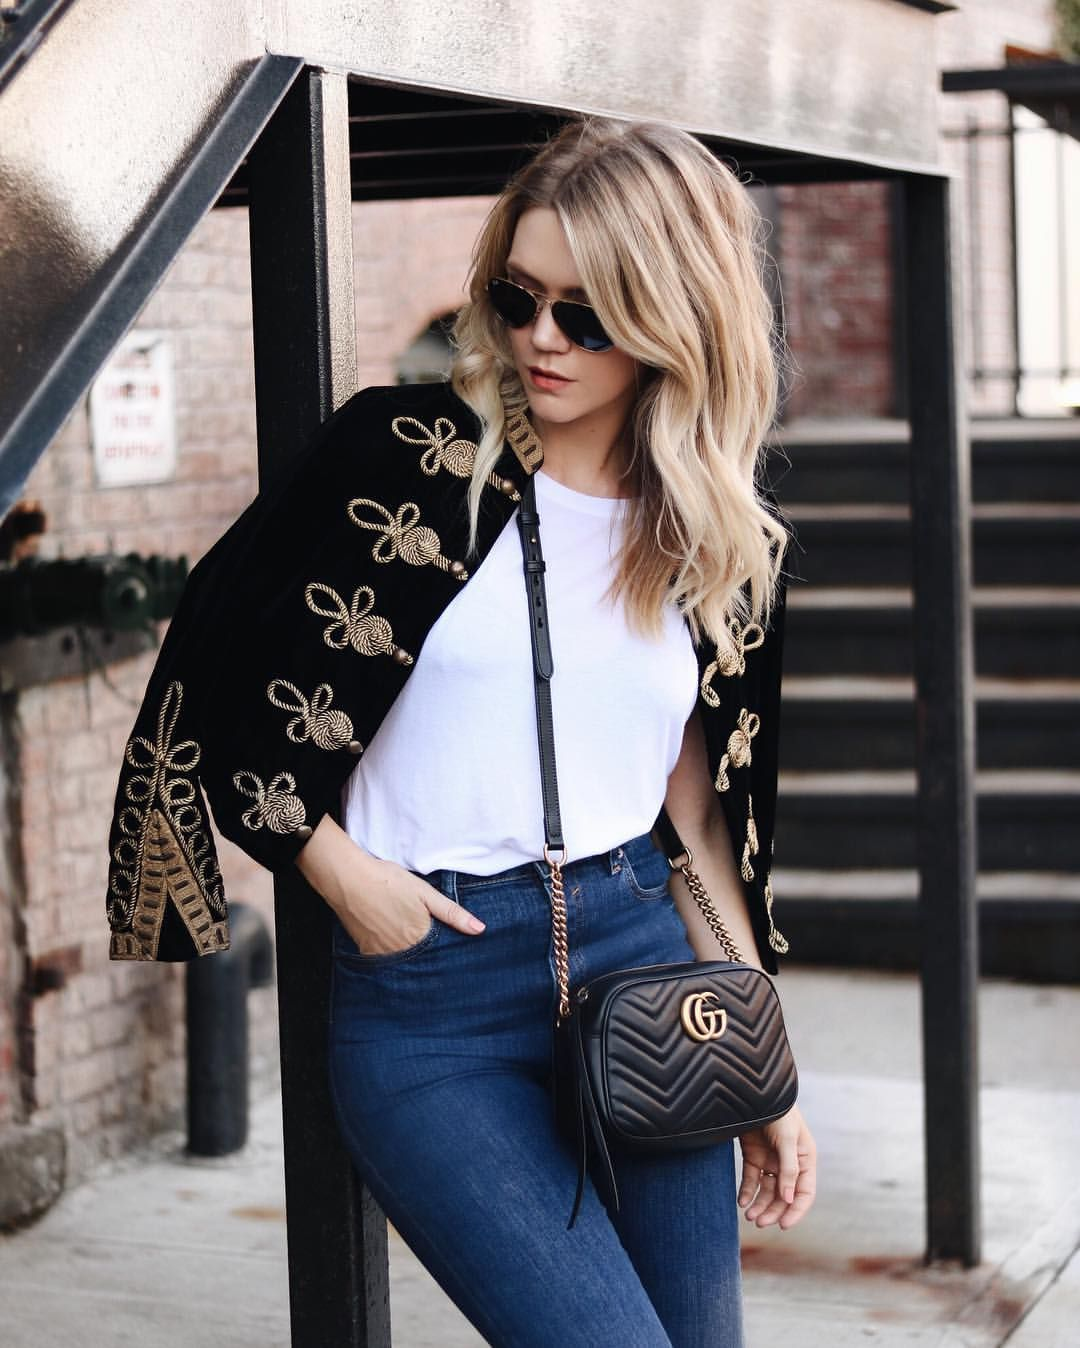 Gucci Marmont See This Instagram Photo By Cheraleelyle 2 798 Likes Bag